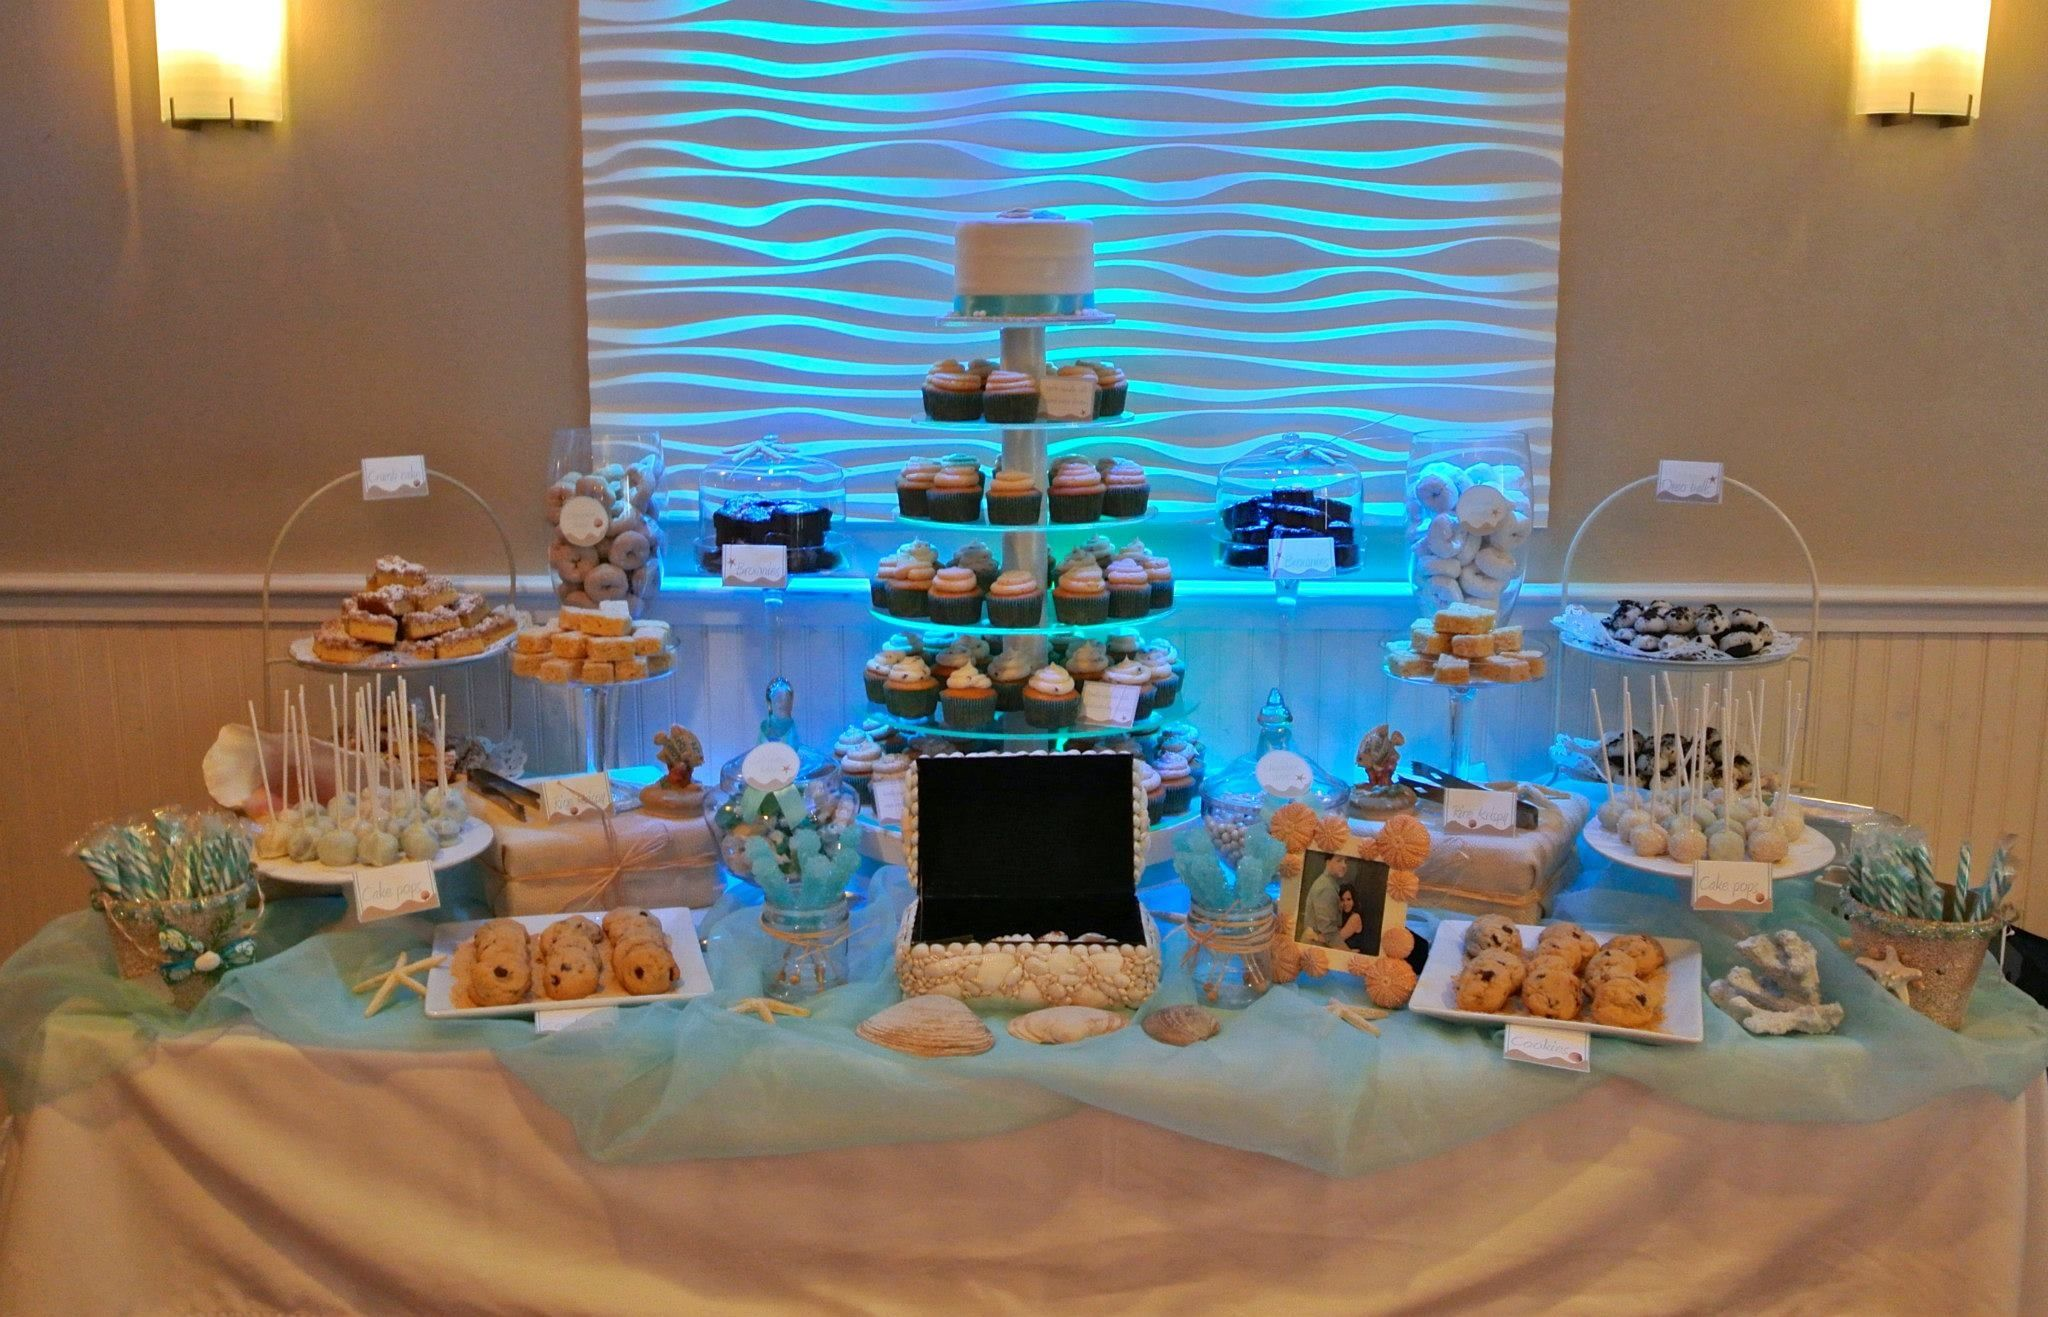 5 Ideas For A Great Beach Themed Wedding In Puglia: Beach Theme Dessert Table